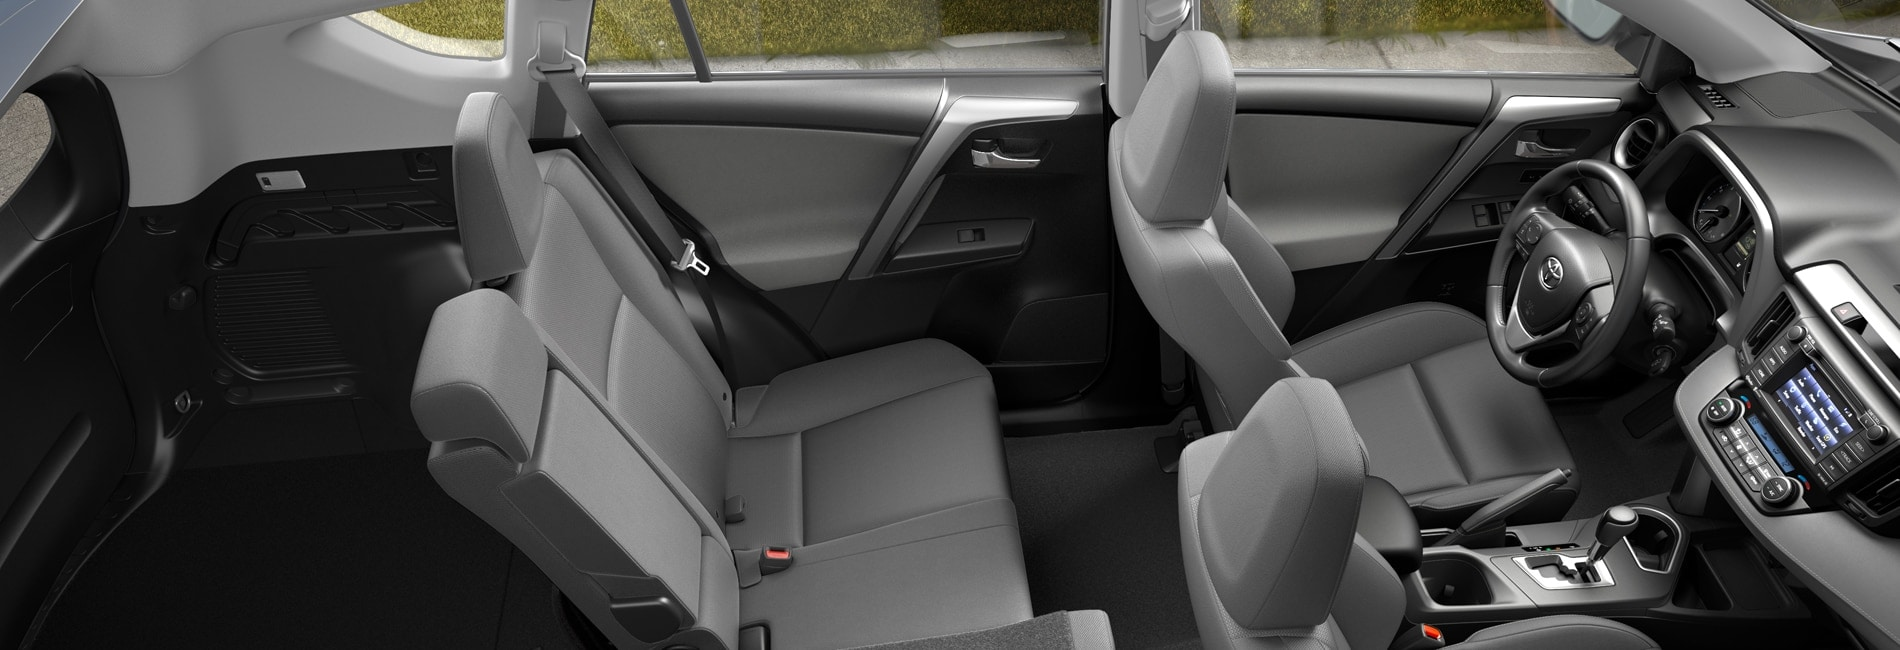 Toyota RAV4 Interior Vehicle Features